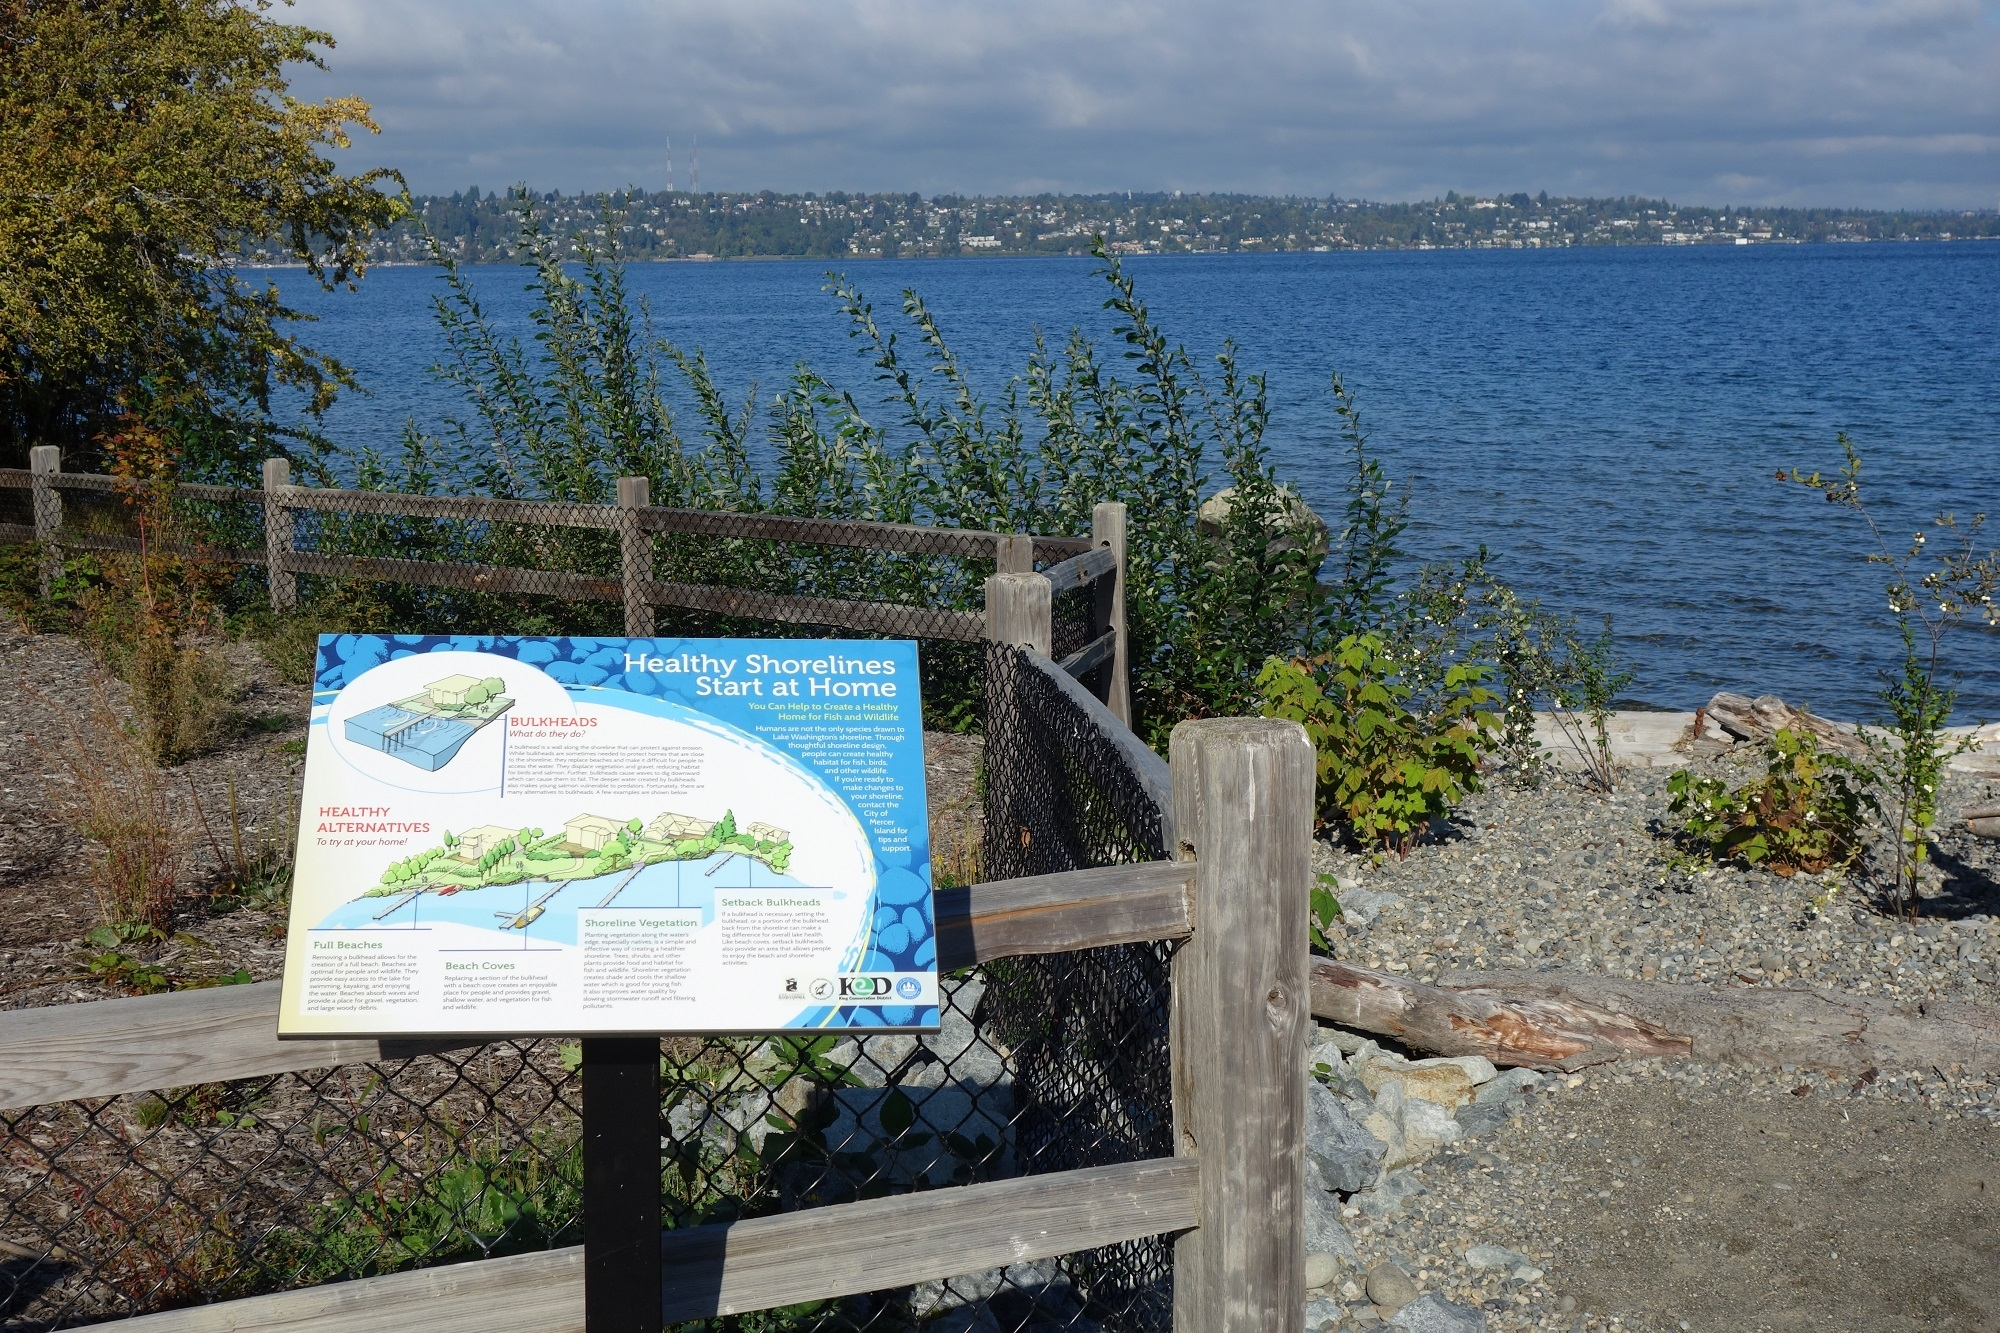 The Watershed Company provides interpretive design and scientific expertise to clients across Washington.